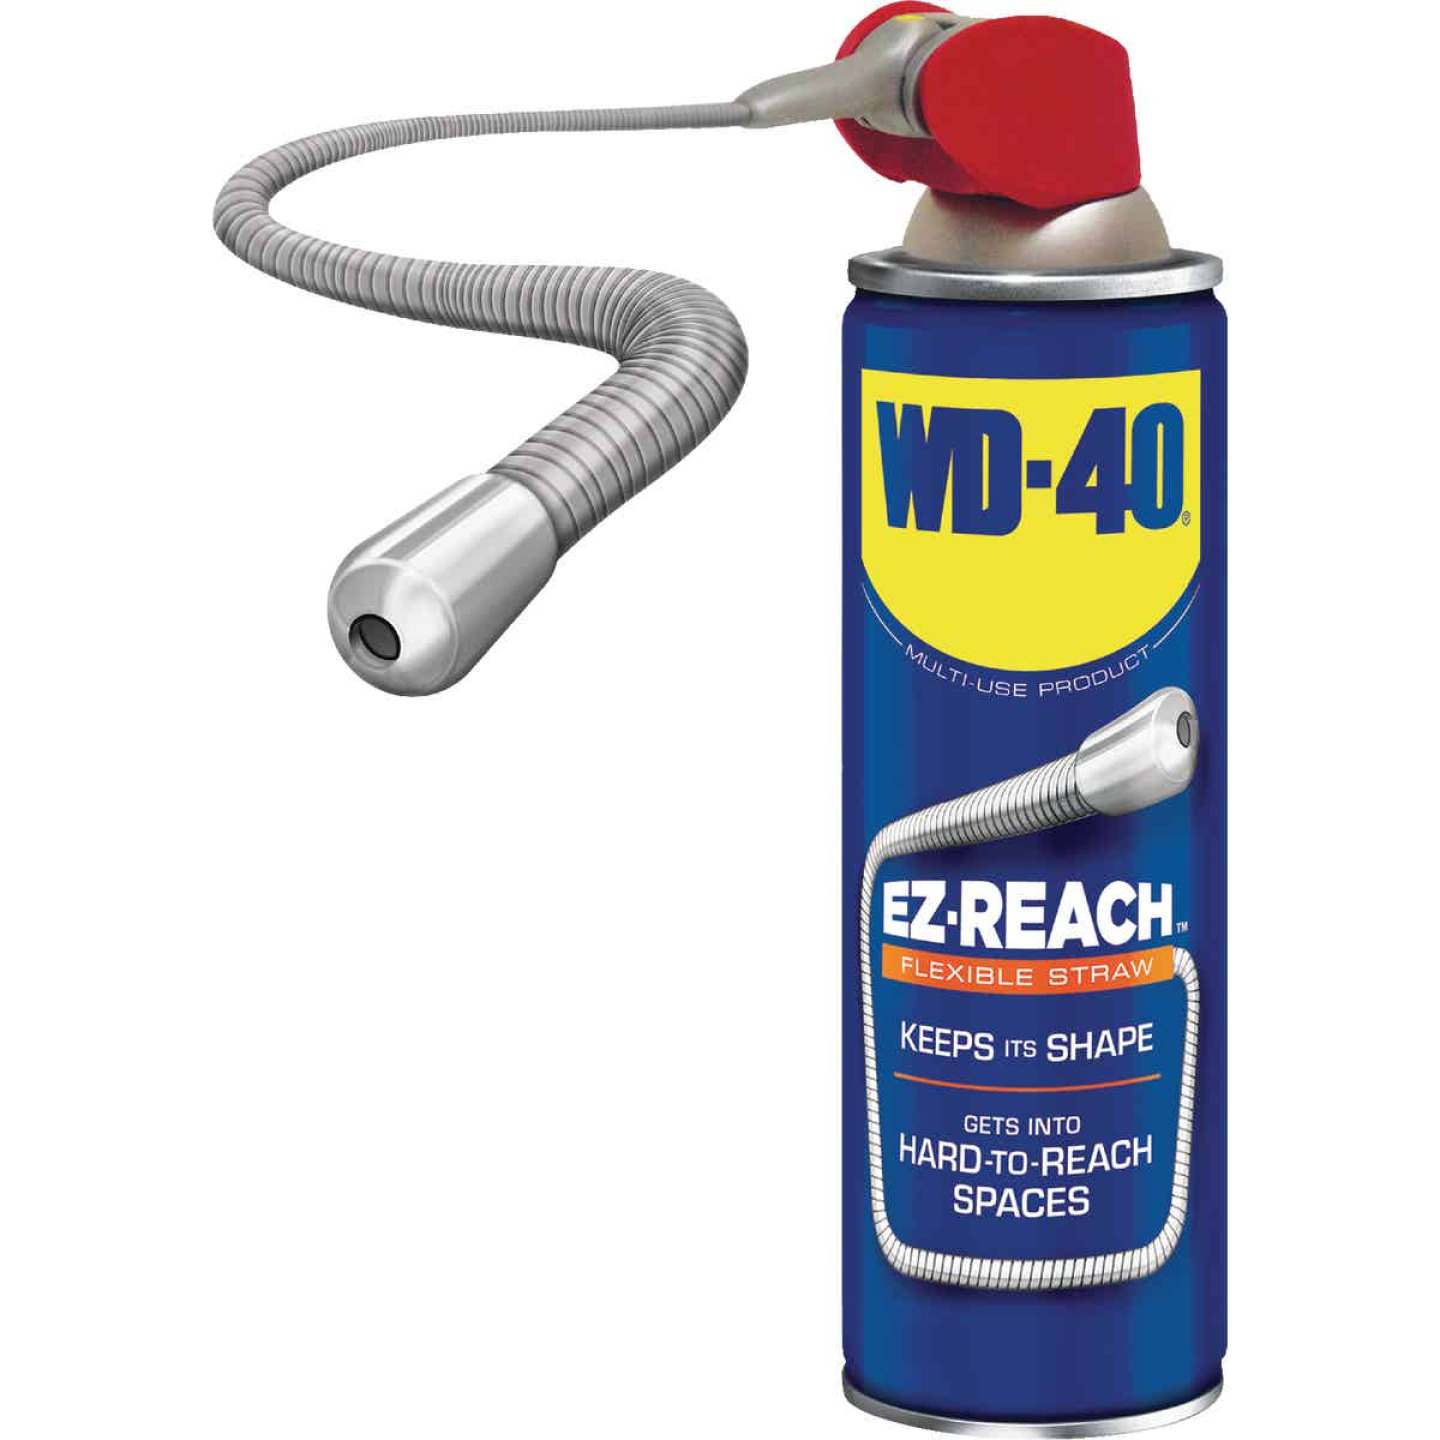 WD-40 14.4 Oz. Aerosol Multi-Purpose Lubricant with EZ Reach 8 In. Metal Straw Image 2